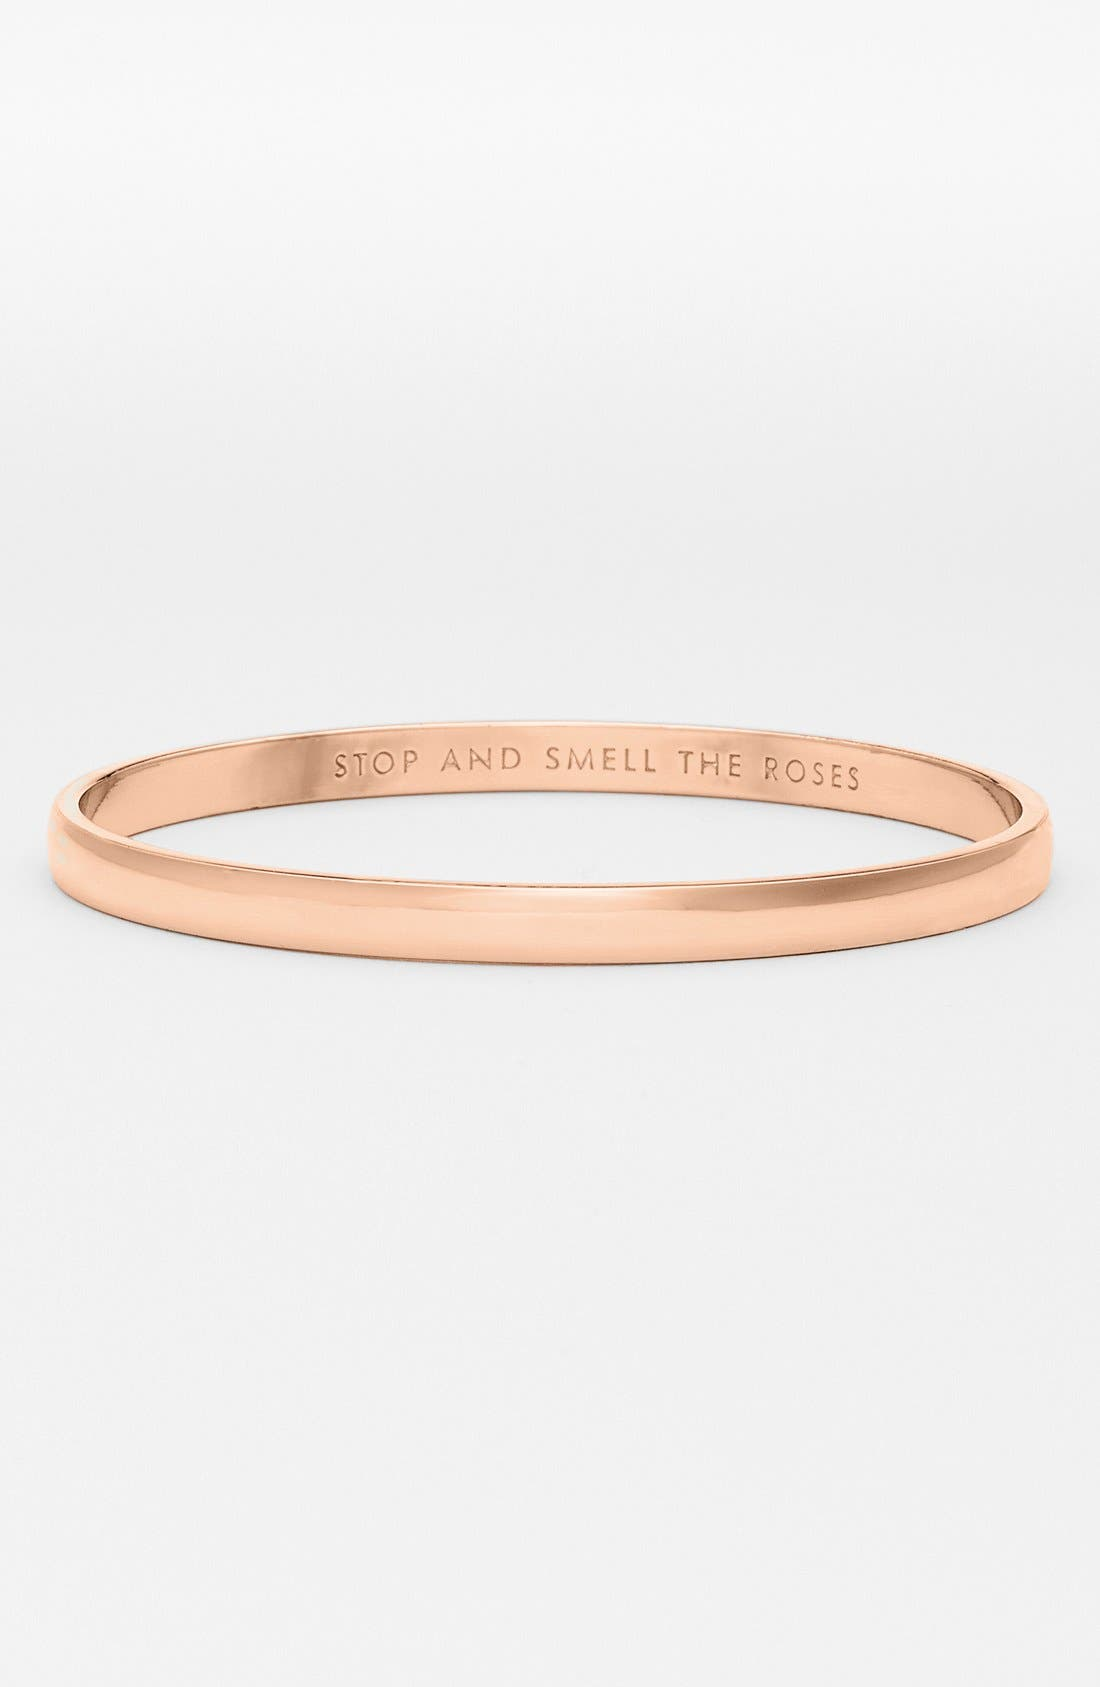 KATE SPADE NEW YORK 'idiom - stop and smell the roses' bangle, Main, color, ROSE GOLD